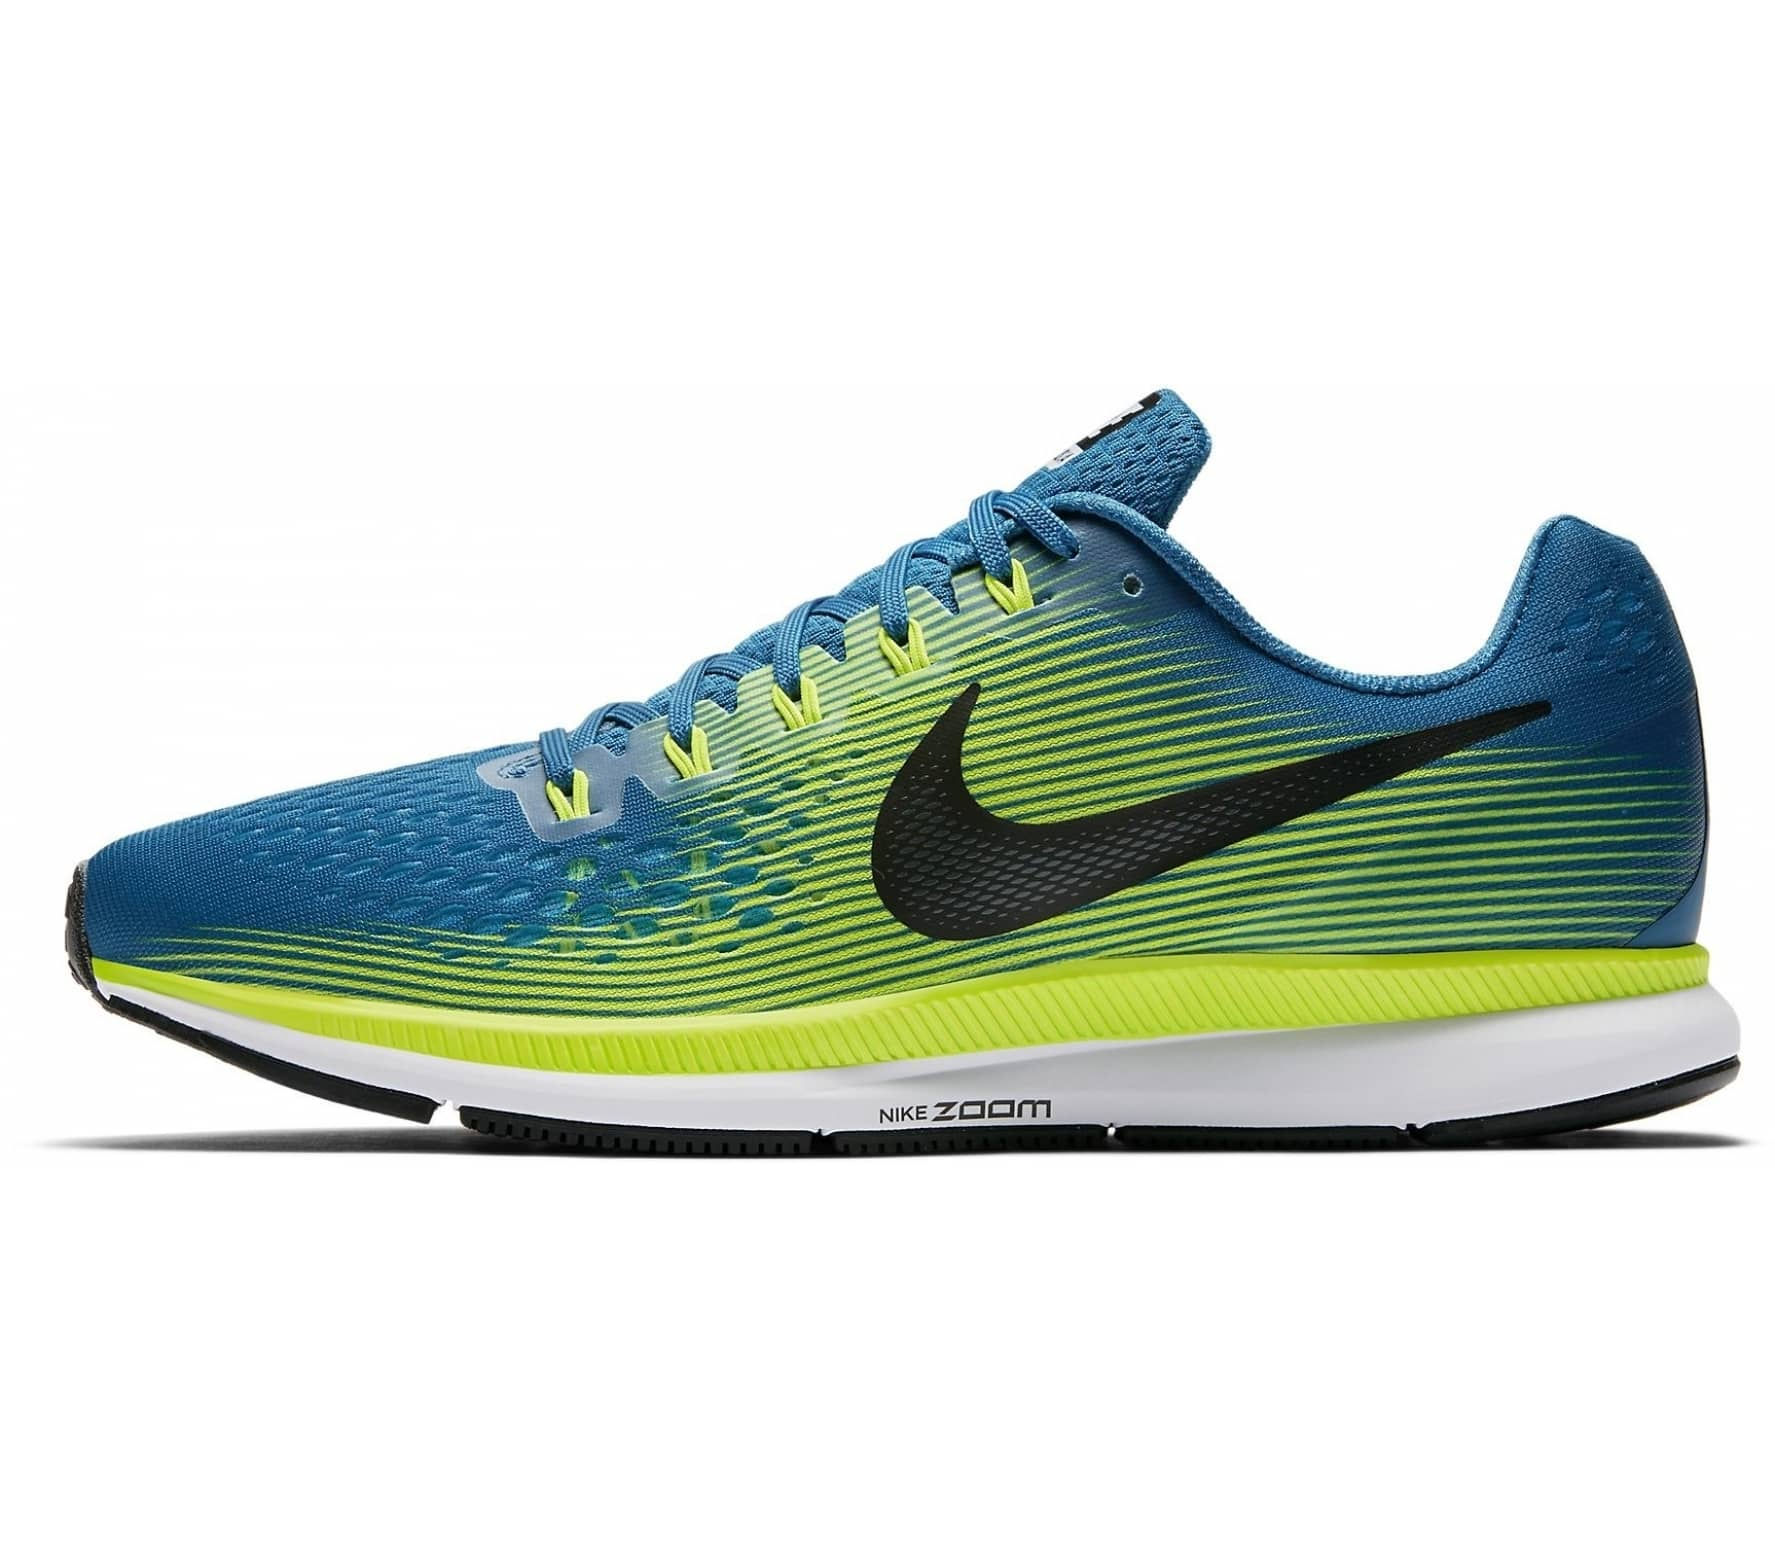 nike air zoom pegasus 34 herren laufschuh blau gr n im online shop von keller sports kaufen. Black Bedroom Furniture Sets. Home Design Ideas